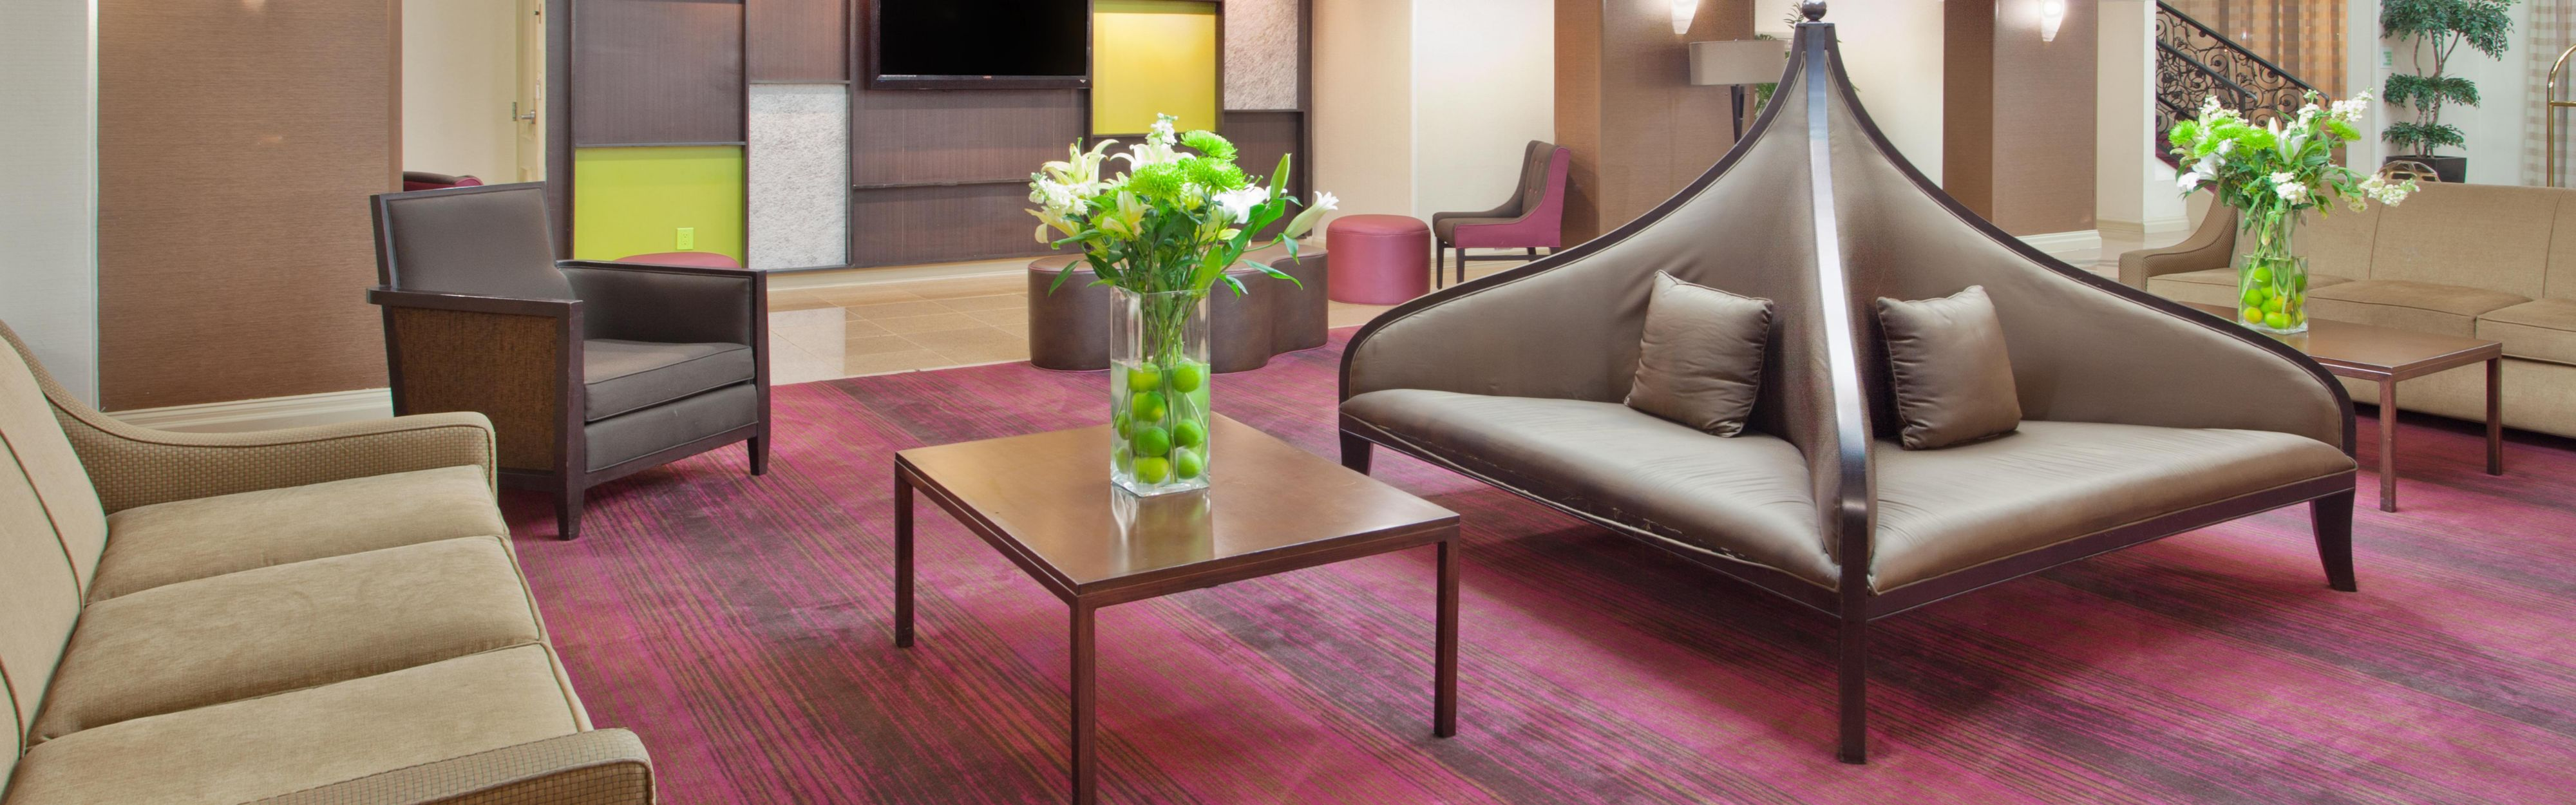 Holiday Inn Shreveport Downtown Hotel By IHG